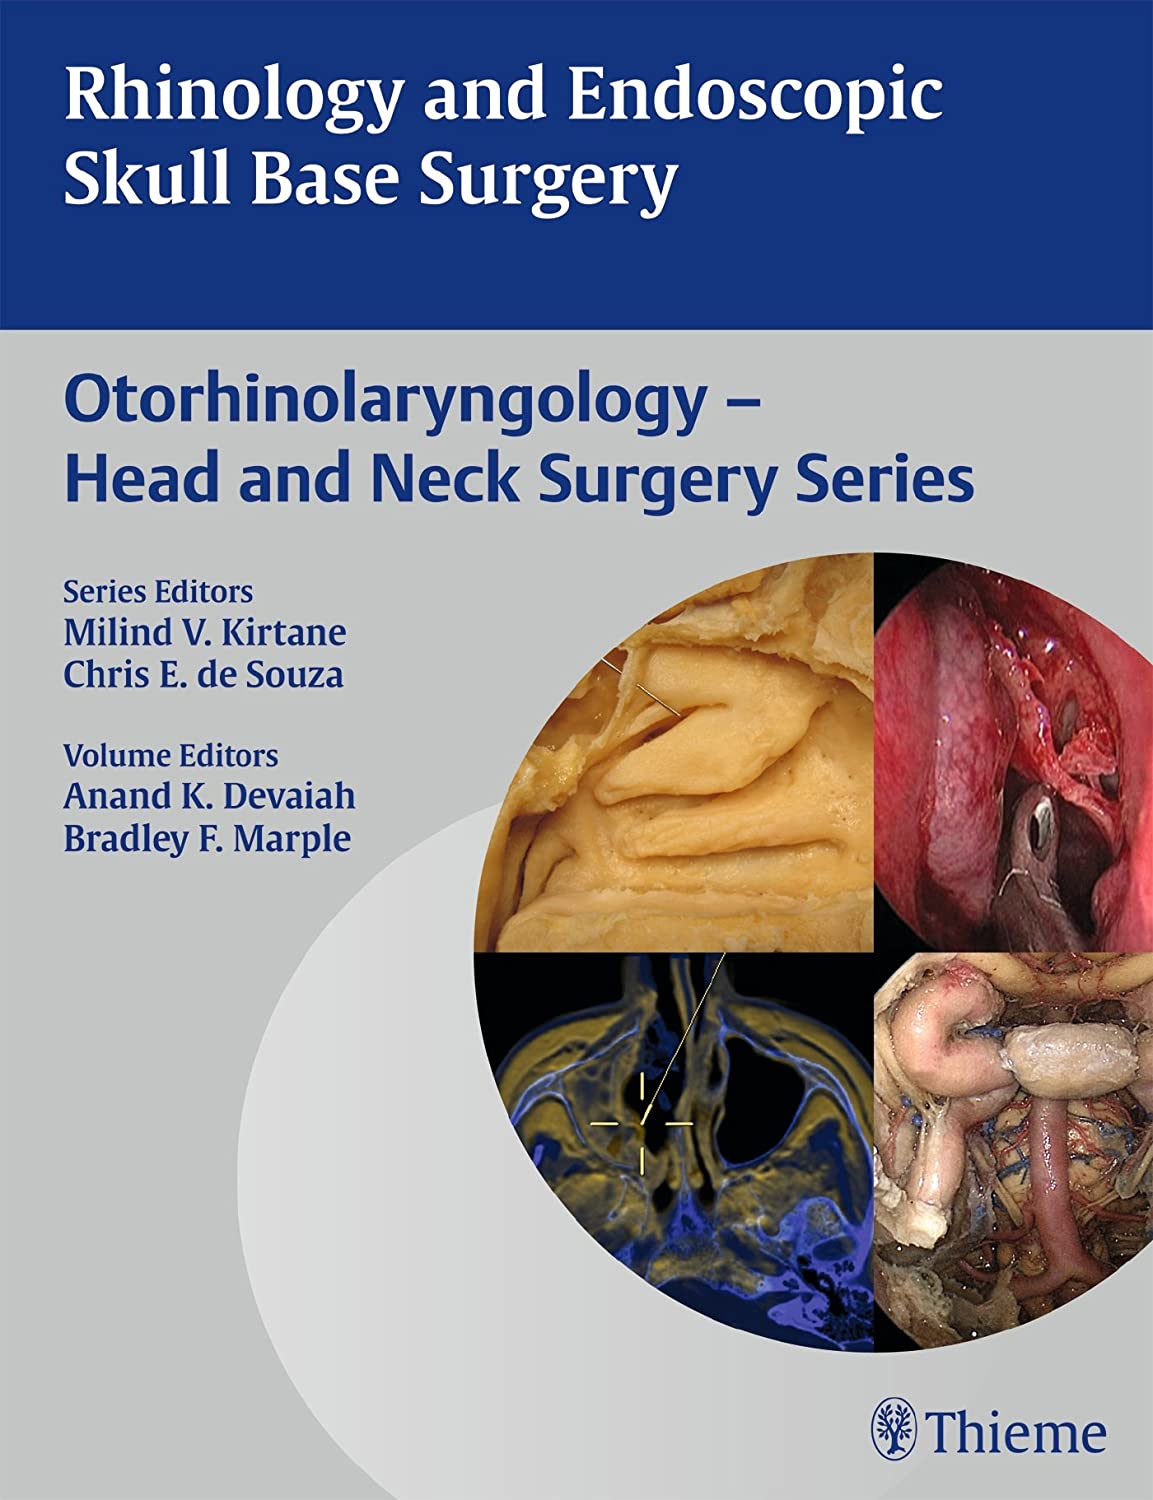 Rhinology and Endoscopic Skull Base Surgery 812gHdVfljL._SL1500_